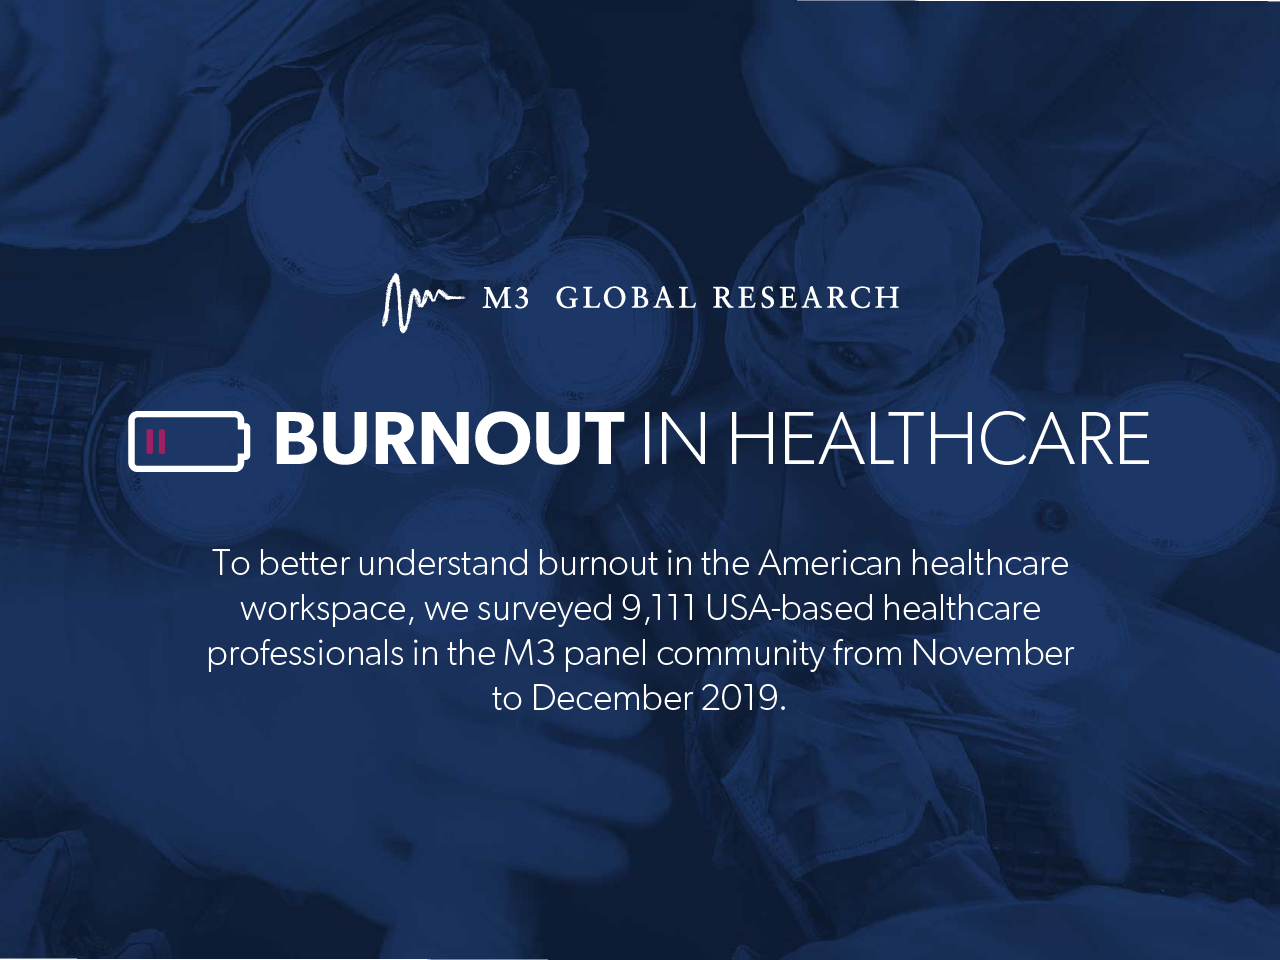 Burnout in the healthcare workplace